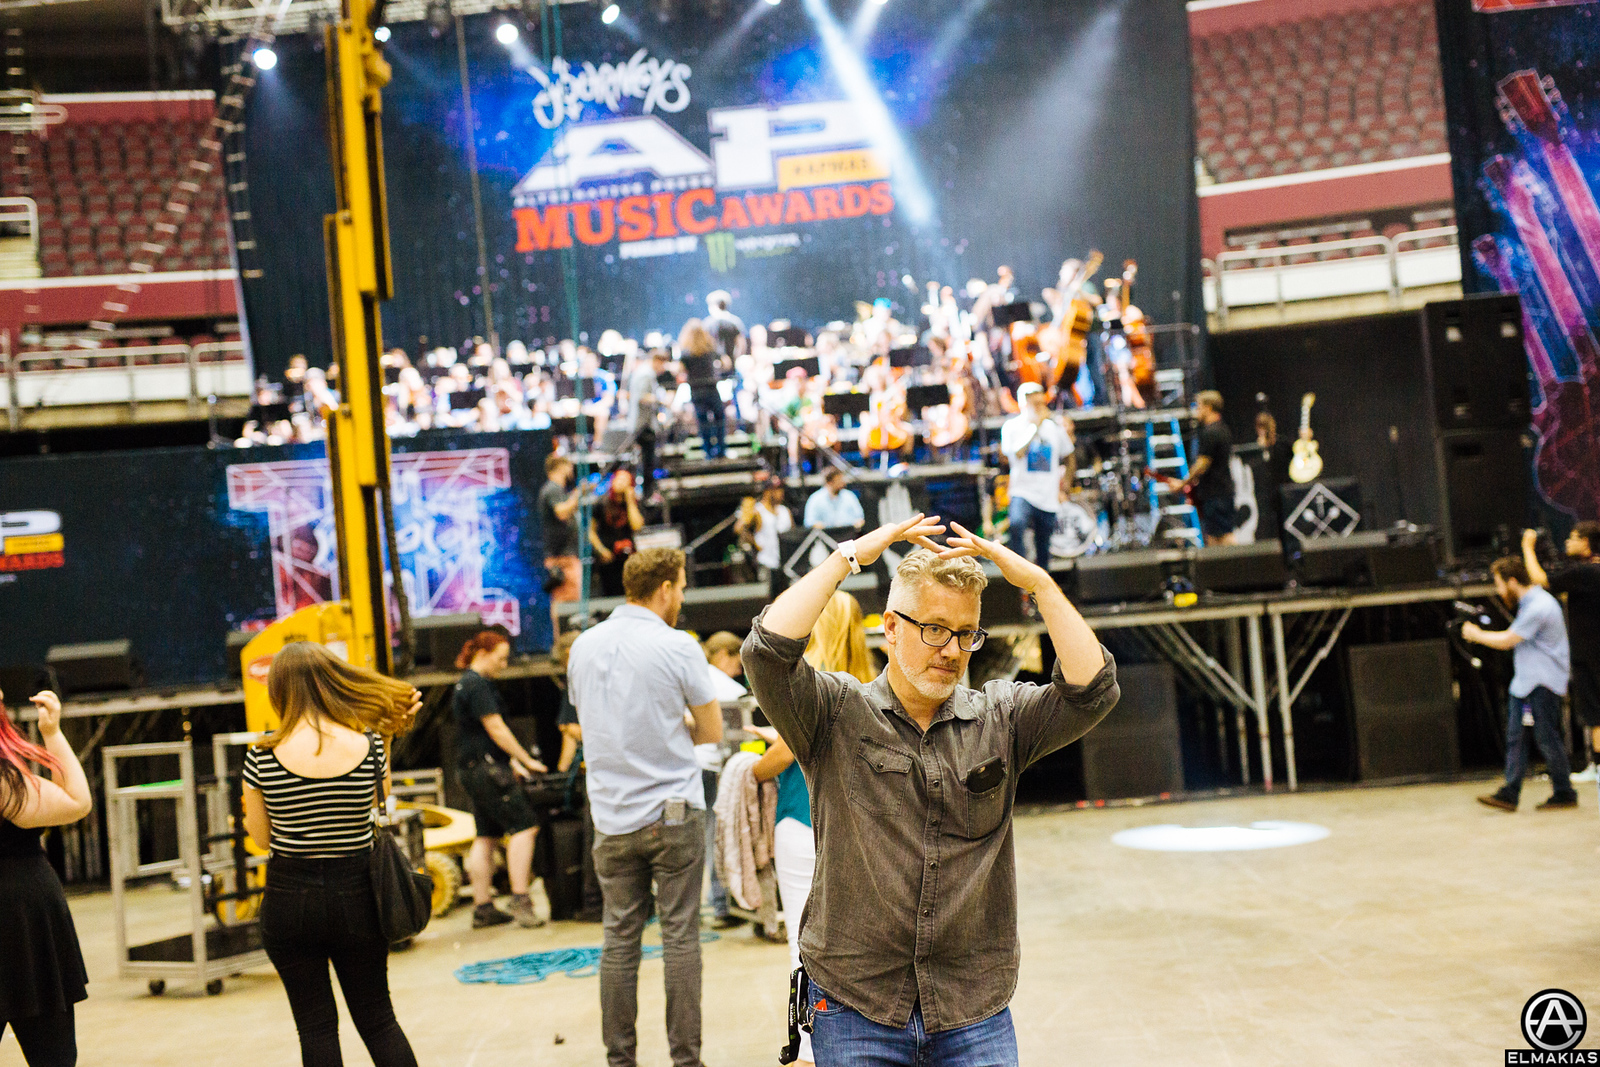 Mike Shea CEO & Founder of Alternative Press at rehearsals for the Alternative Press Music Awards 2015 by Adam Elmakias